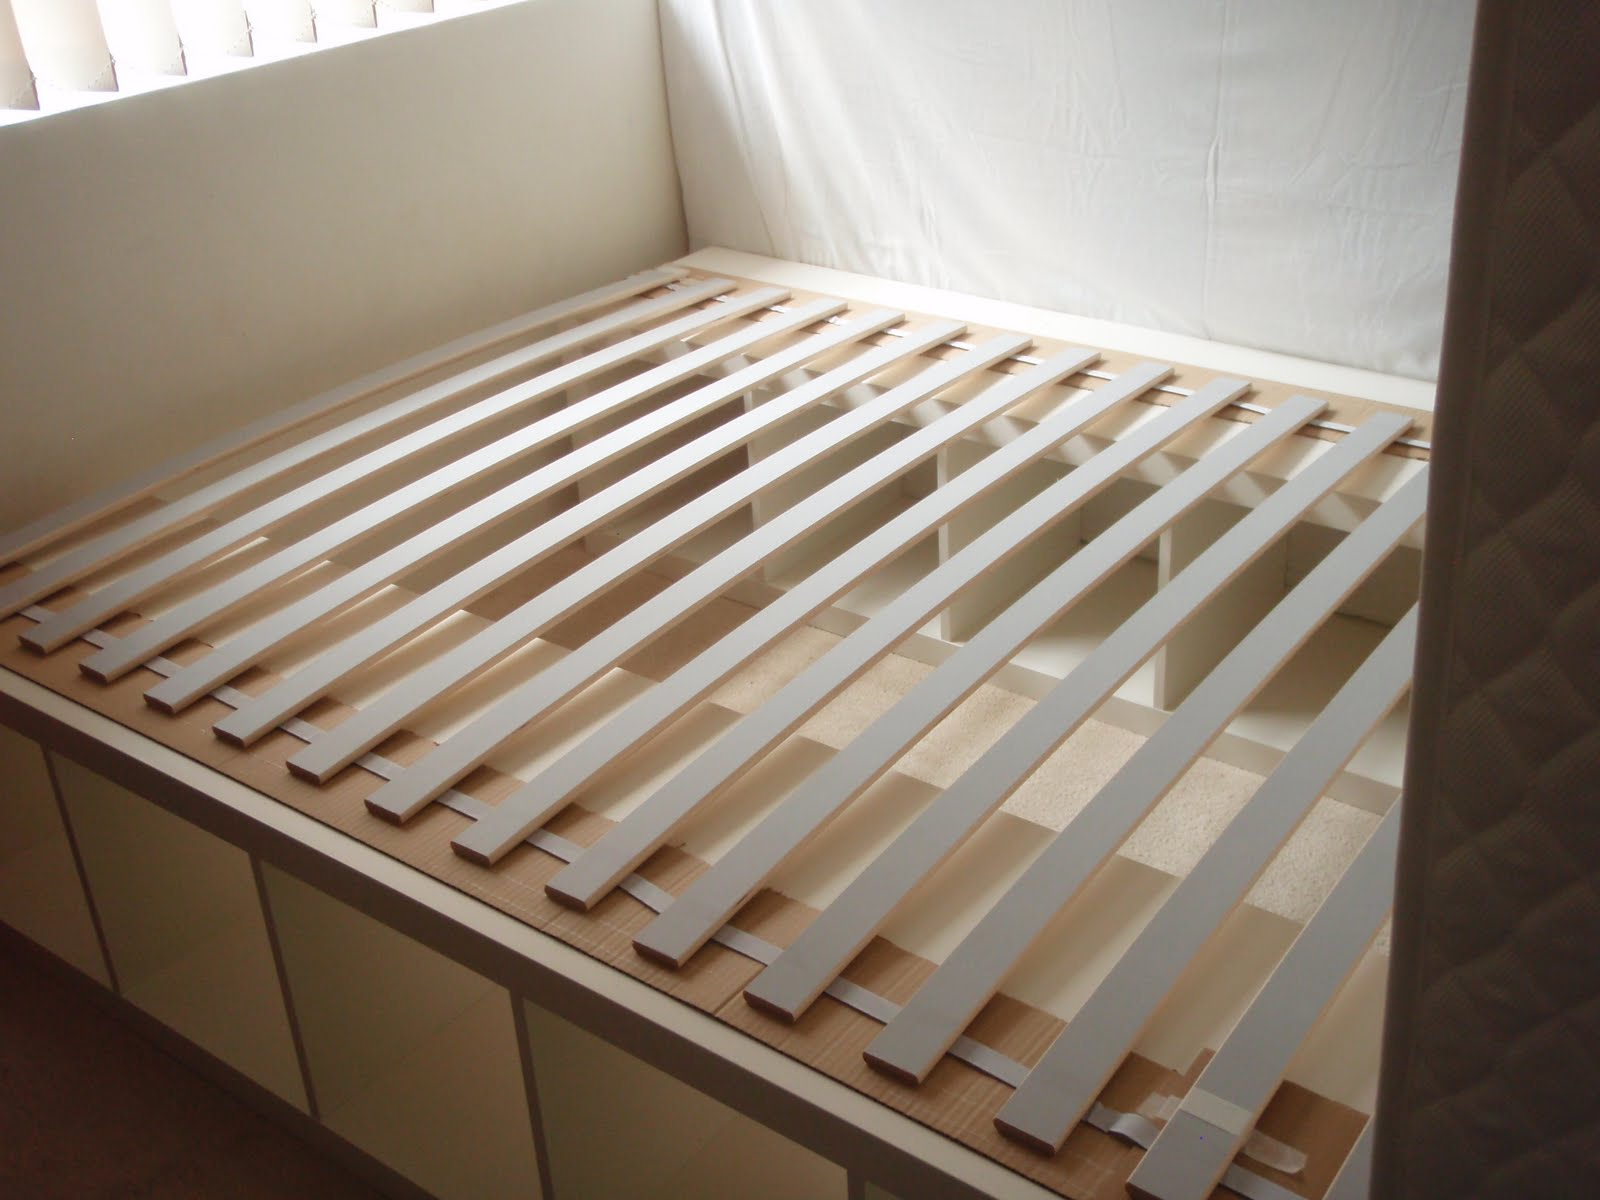 Expedit re purposed as bed frame for maximum storage Get Home